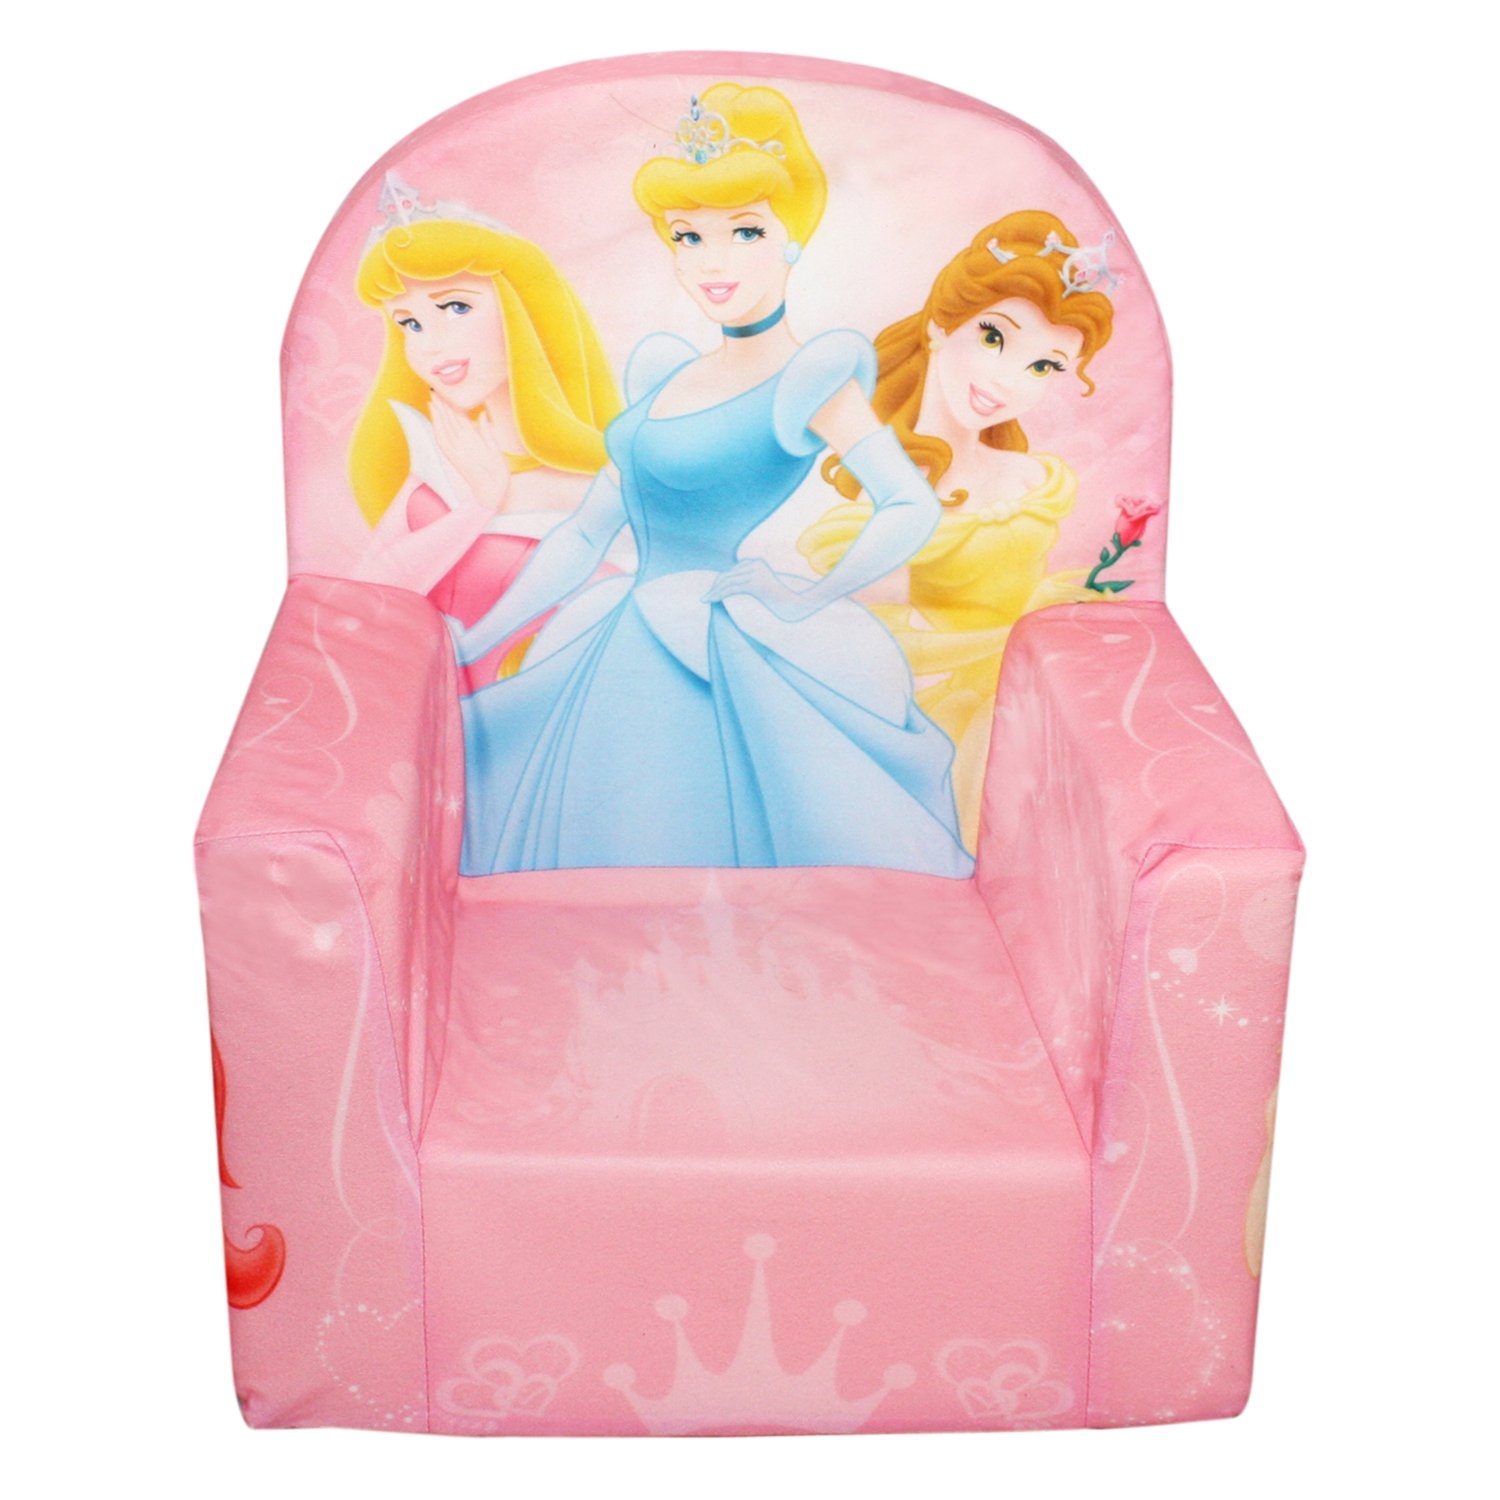 Disney Princess Children 39 S Chairs And Girl 39 S Bedroom Decor